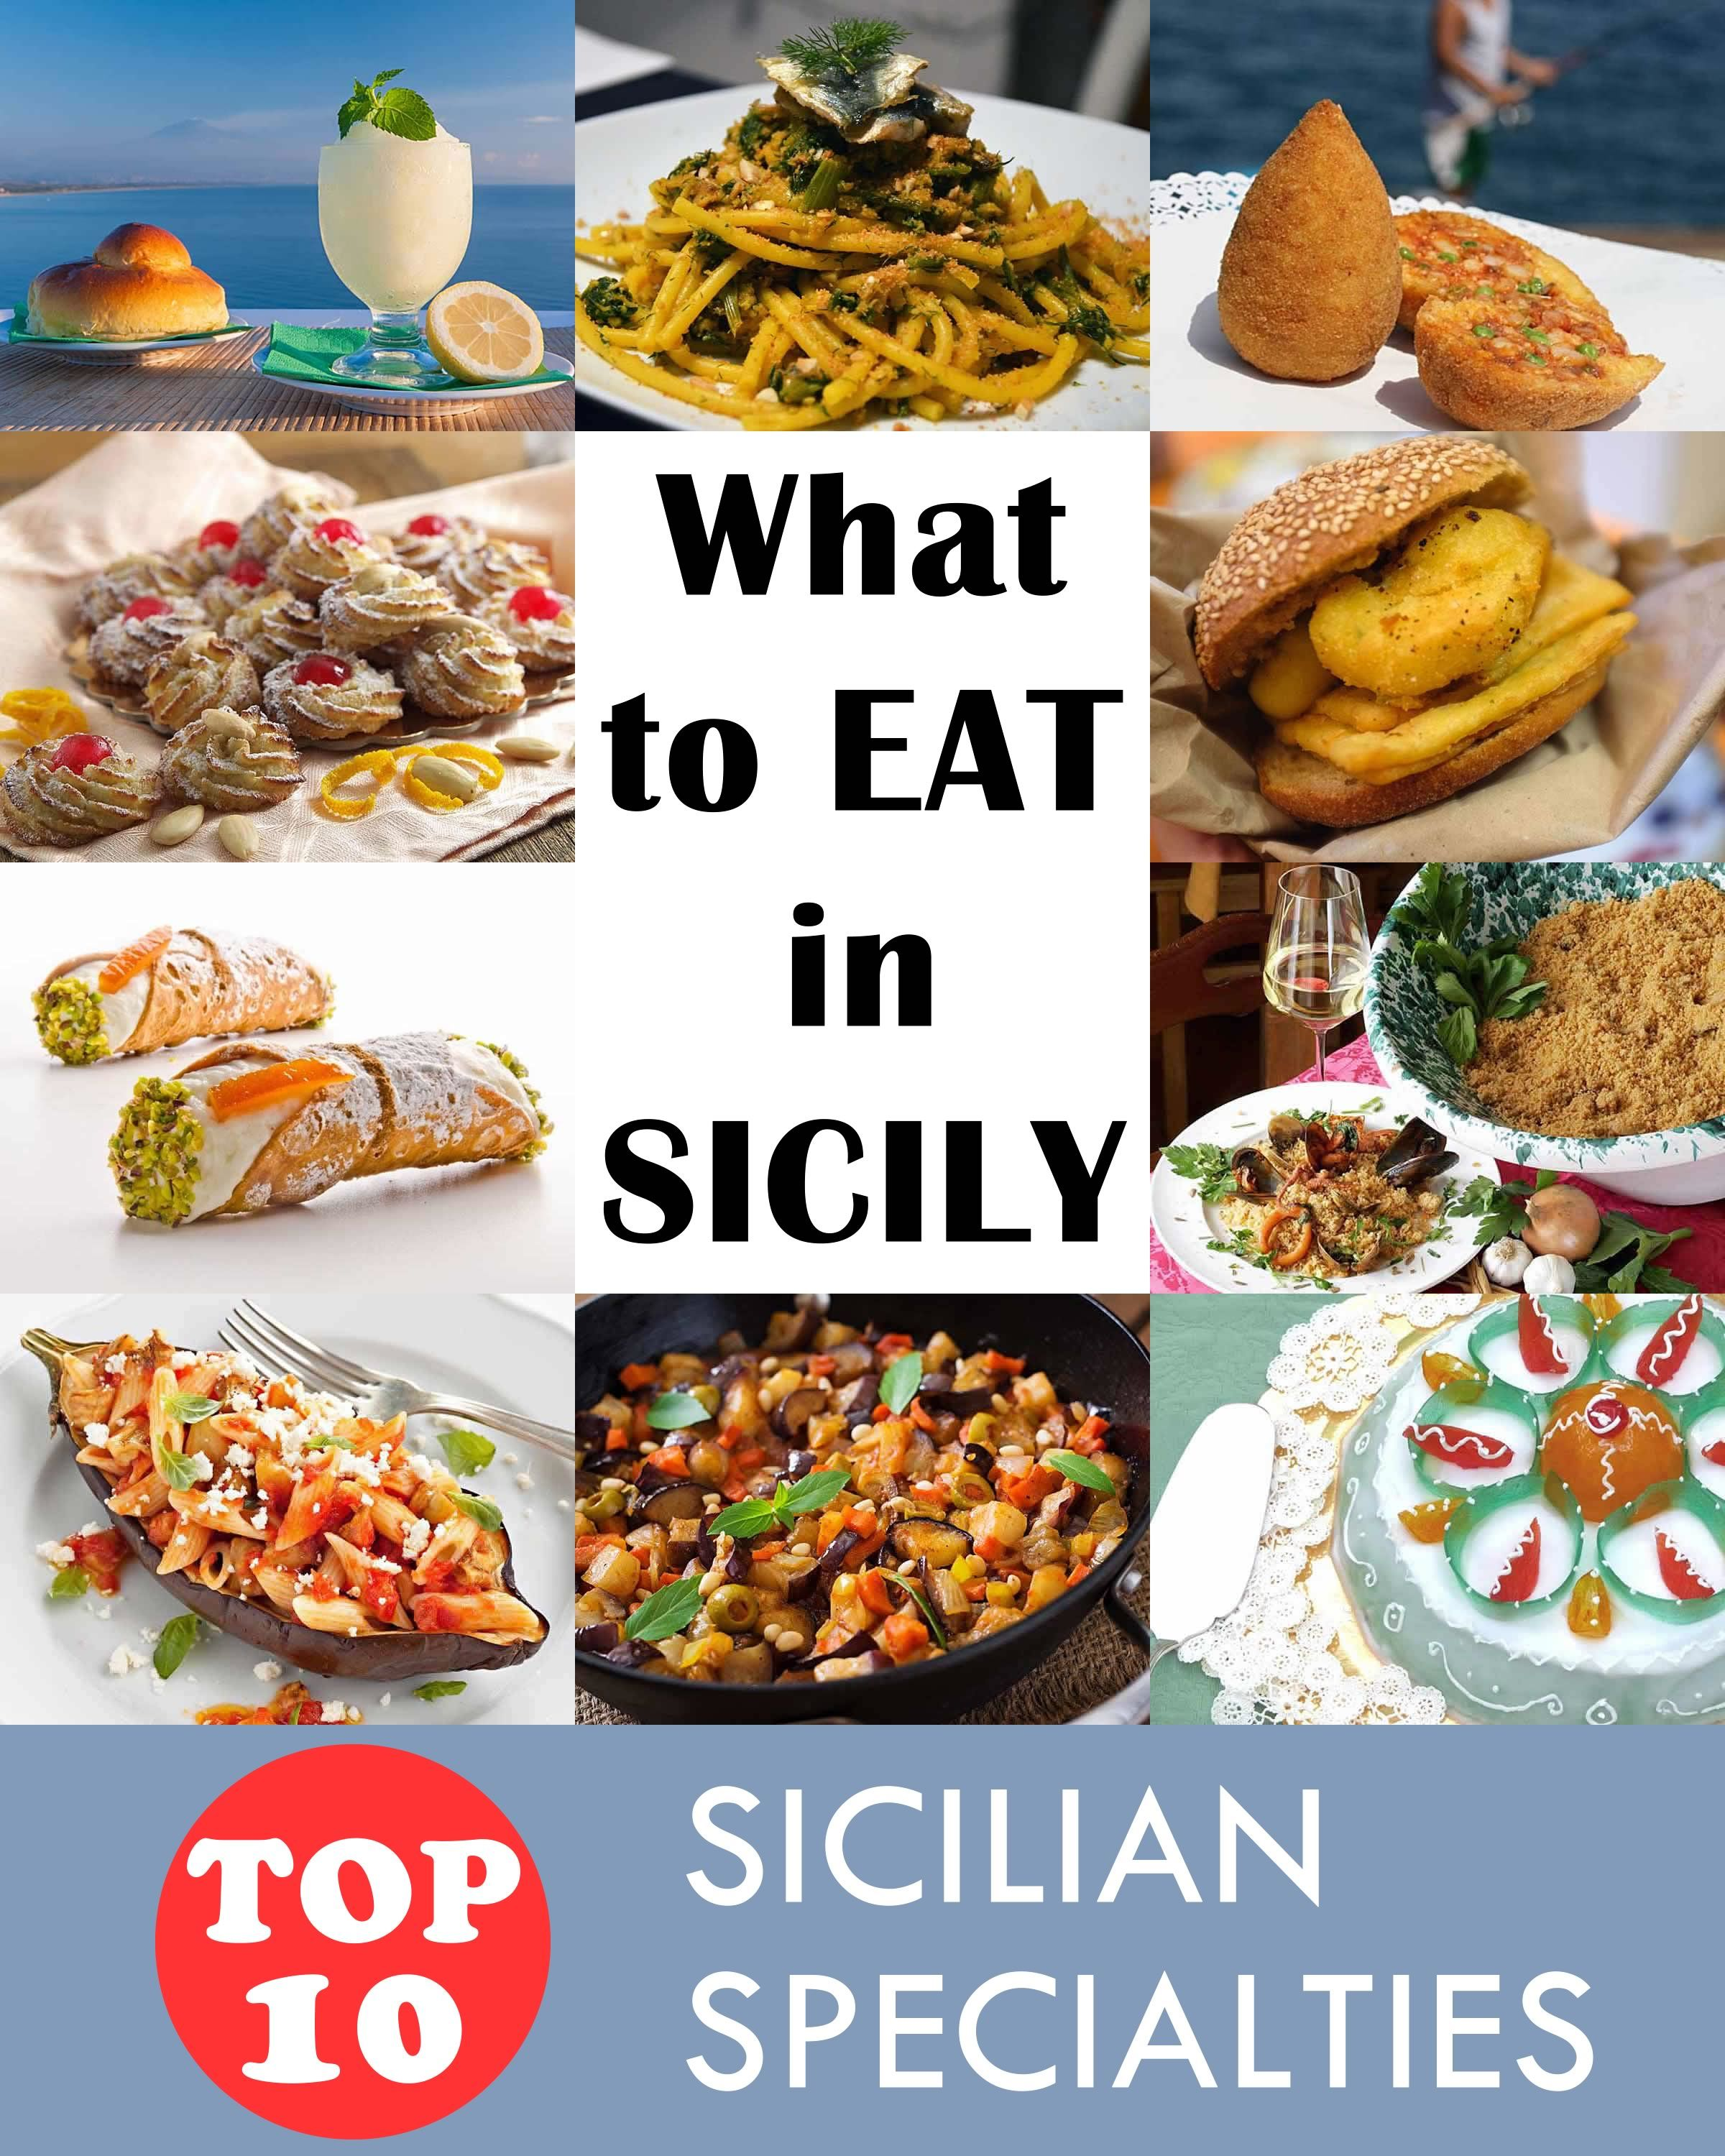 What to Eat in Sicily Top 10 Sicilian Specialties